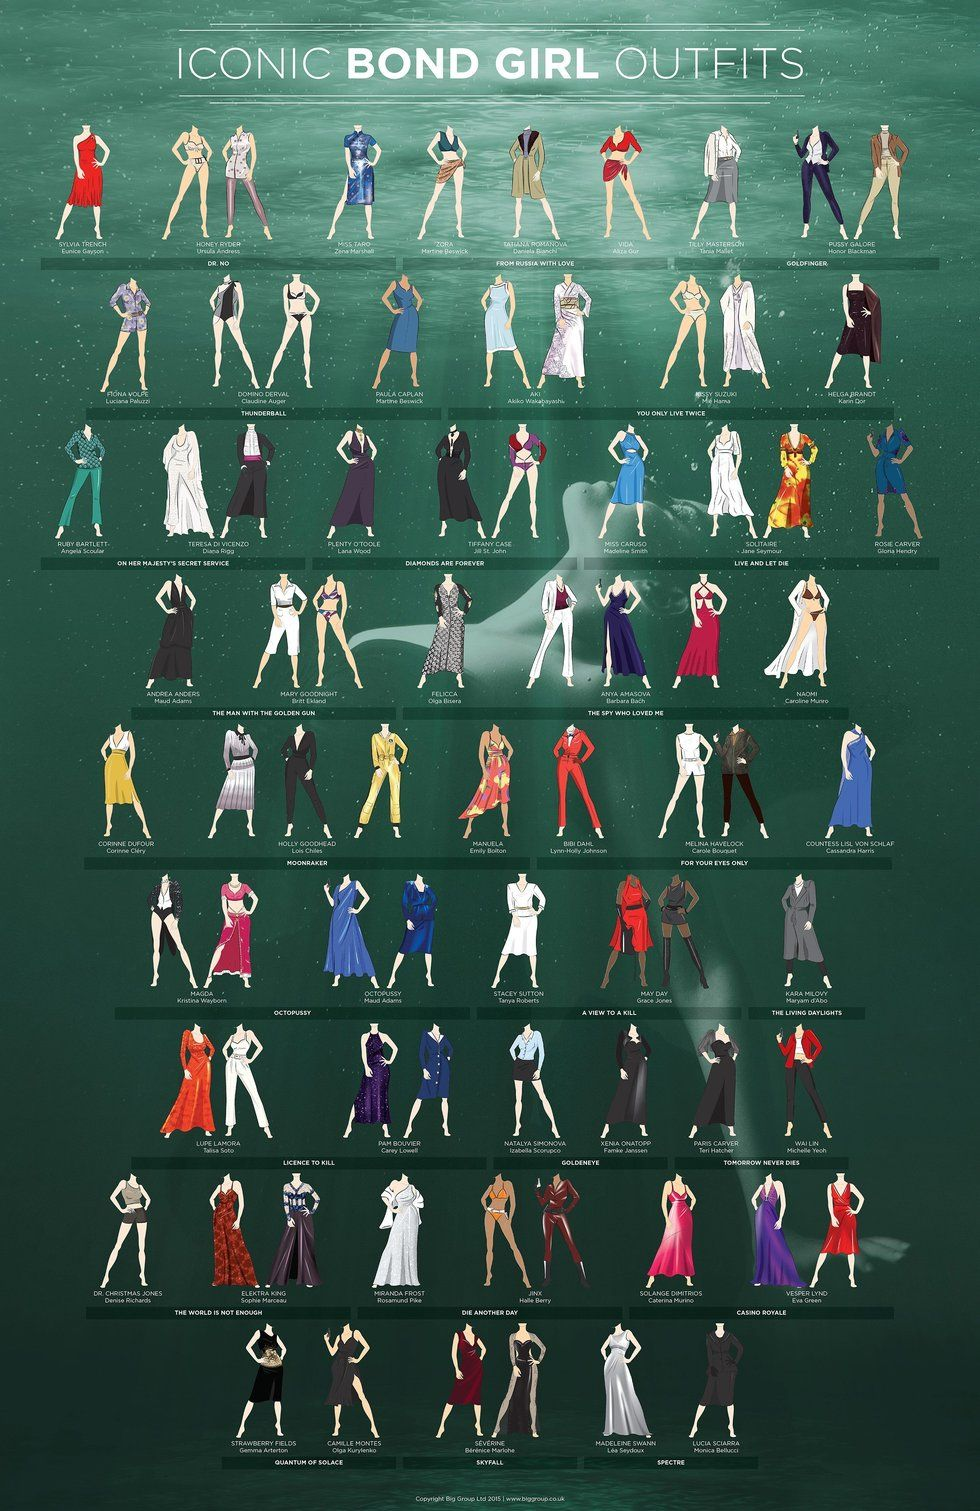 77 iconic outfits worn by the women of Bond | Pinterest | Julfest ...